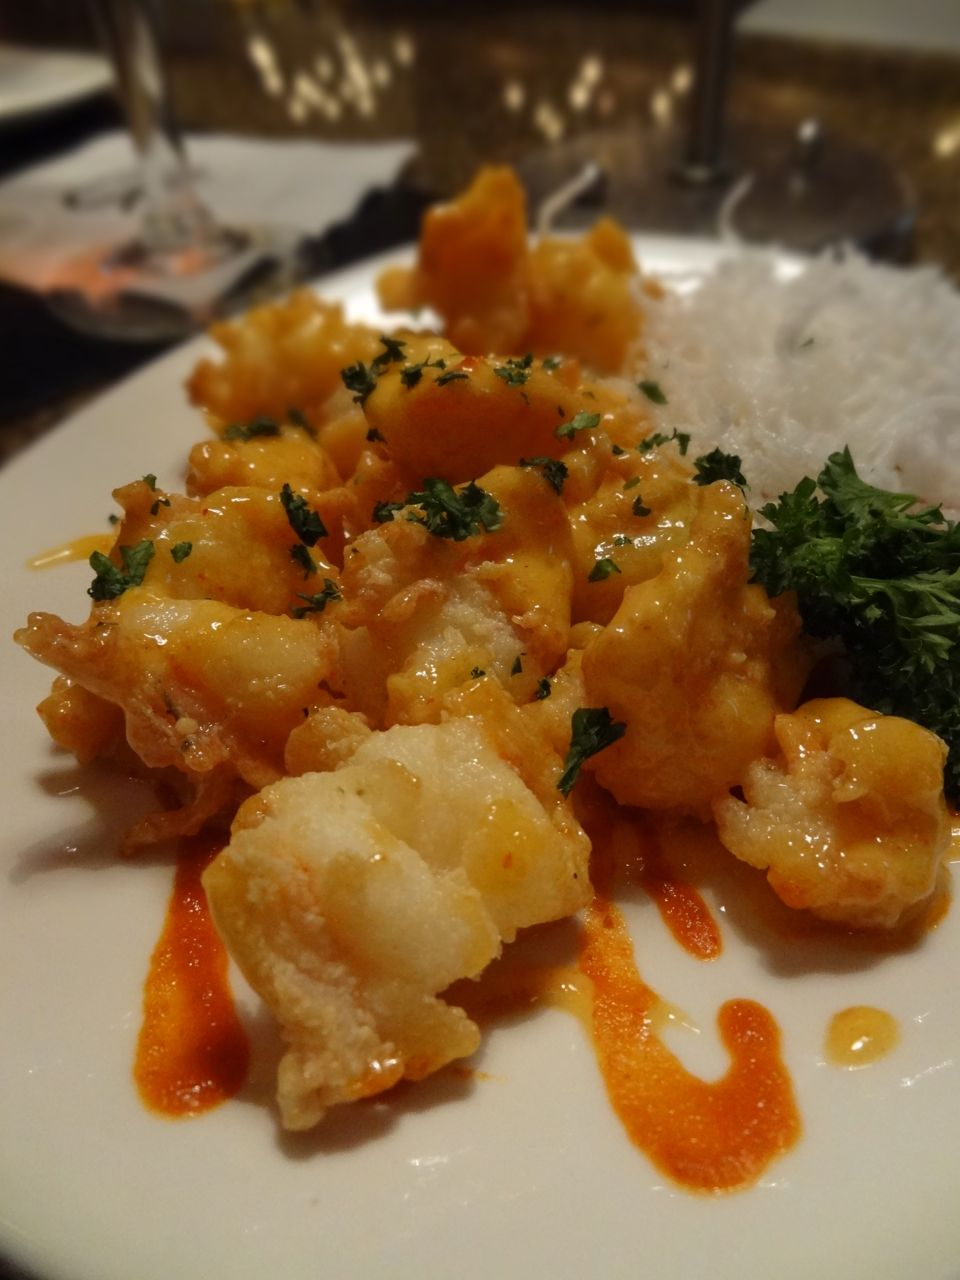 Tempura fried Firecracker Shrimp with dynamite sauce